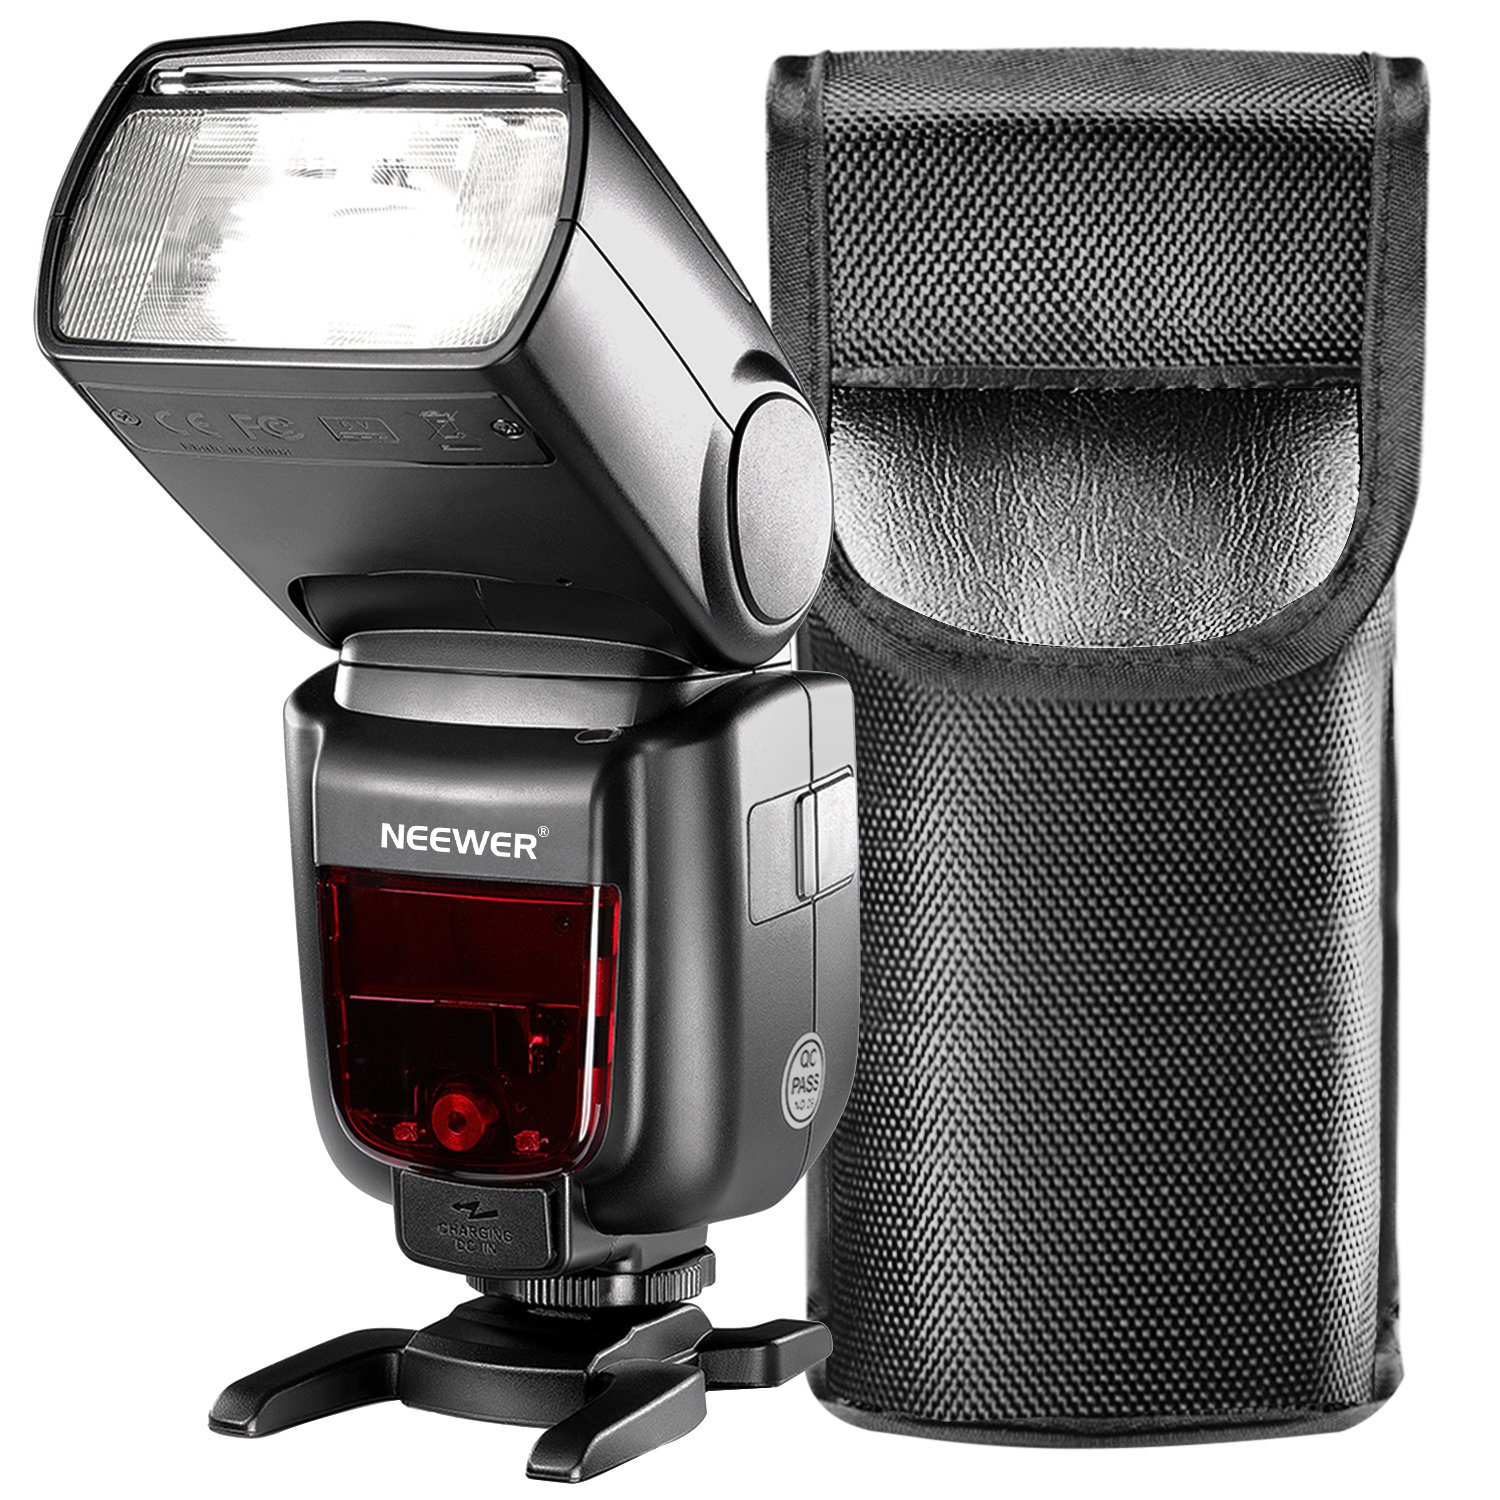 Neewer GN60 2.4G Manual HSS Master Slave Flash Speedlite for Sony A7 A7S A7SII A7R A7RII A7II A6000 A6300 A6500 A77II A58 A99 Cameras with New Mi Hot Shoe (NW865S) by Neewer